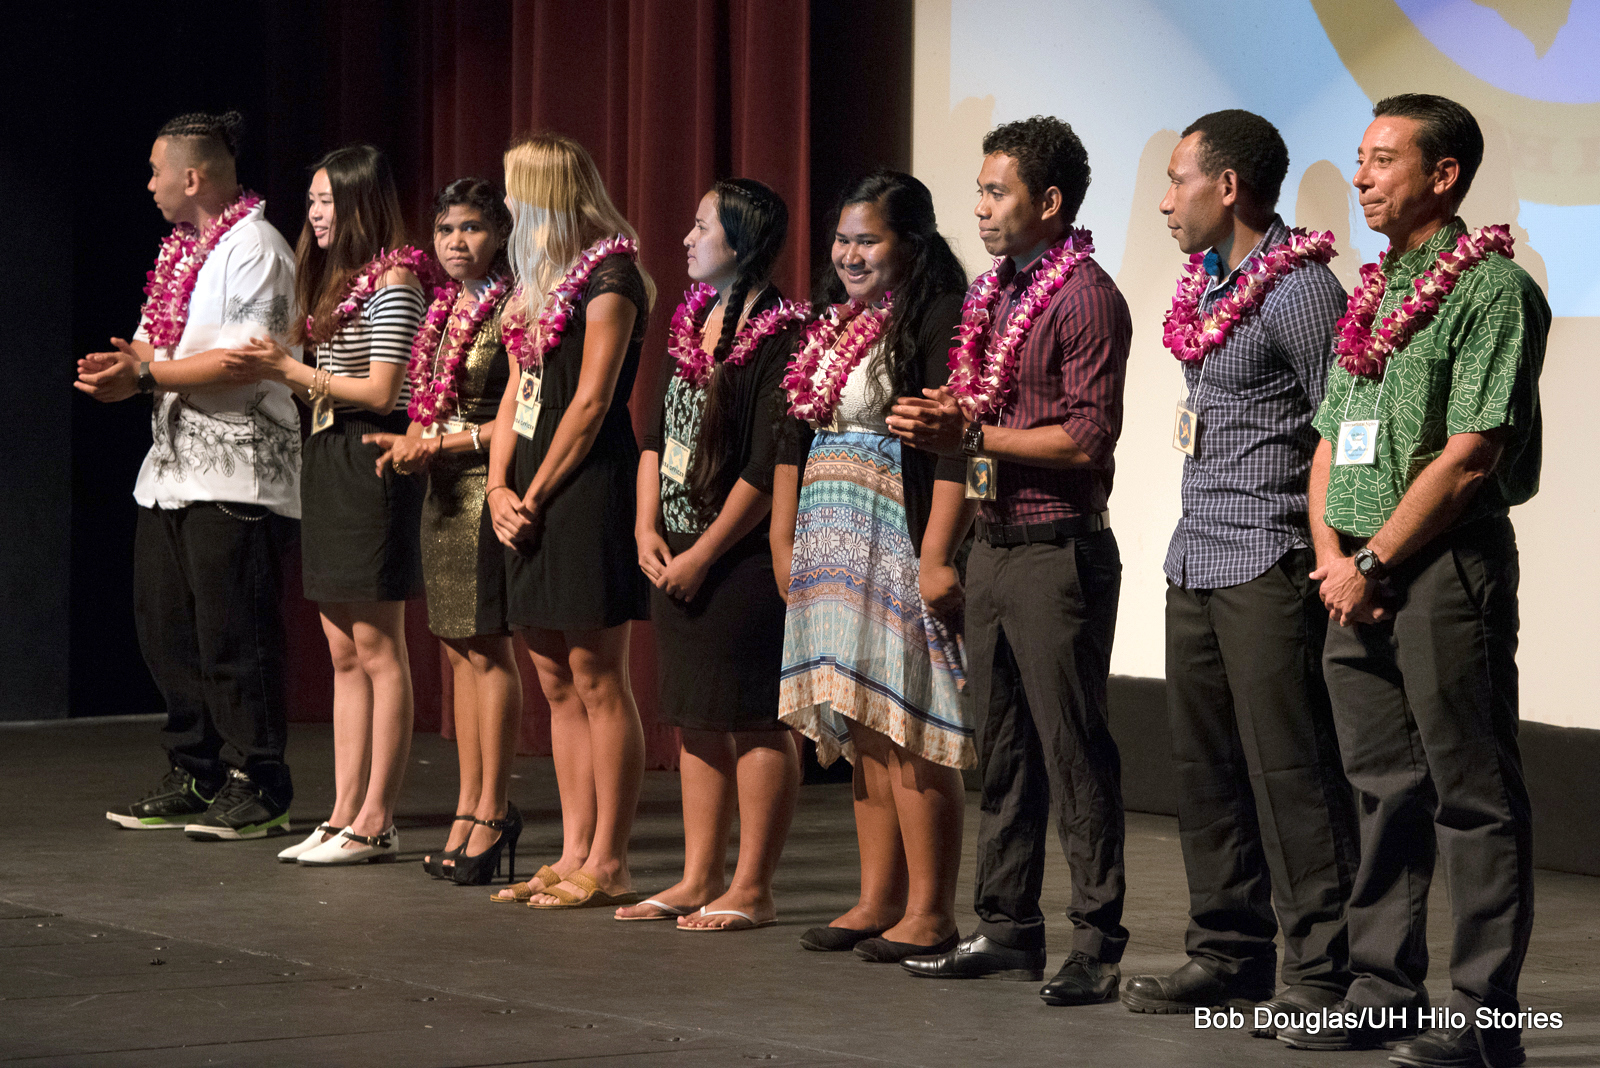 Students lined up on stage for acknowledgement